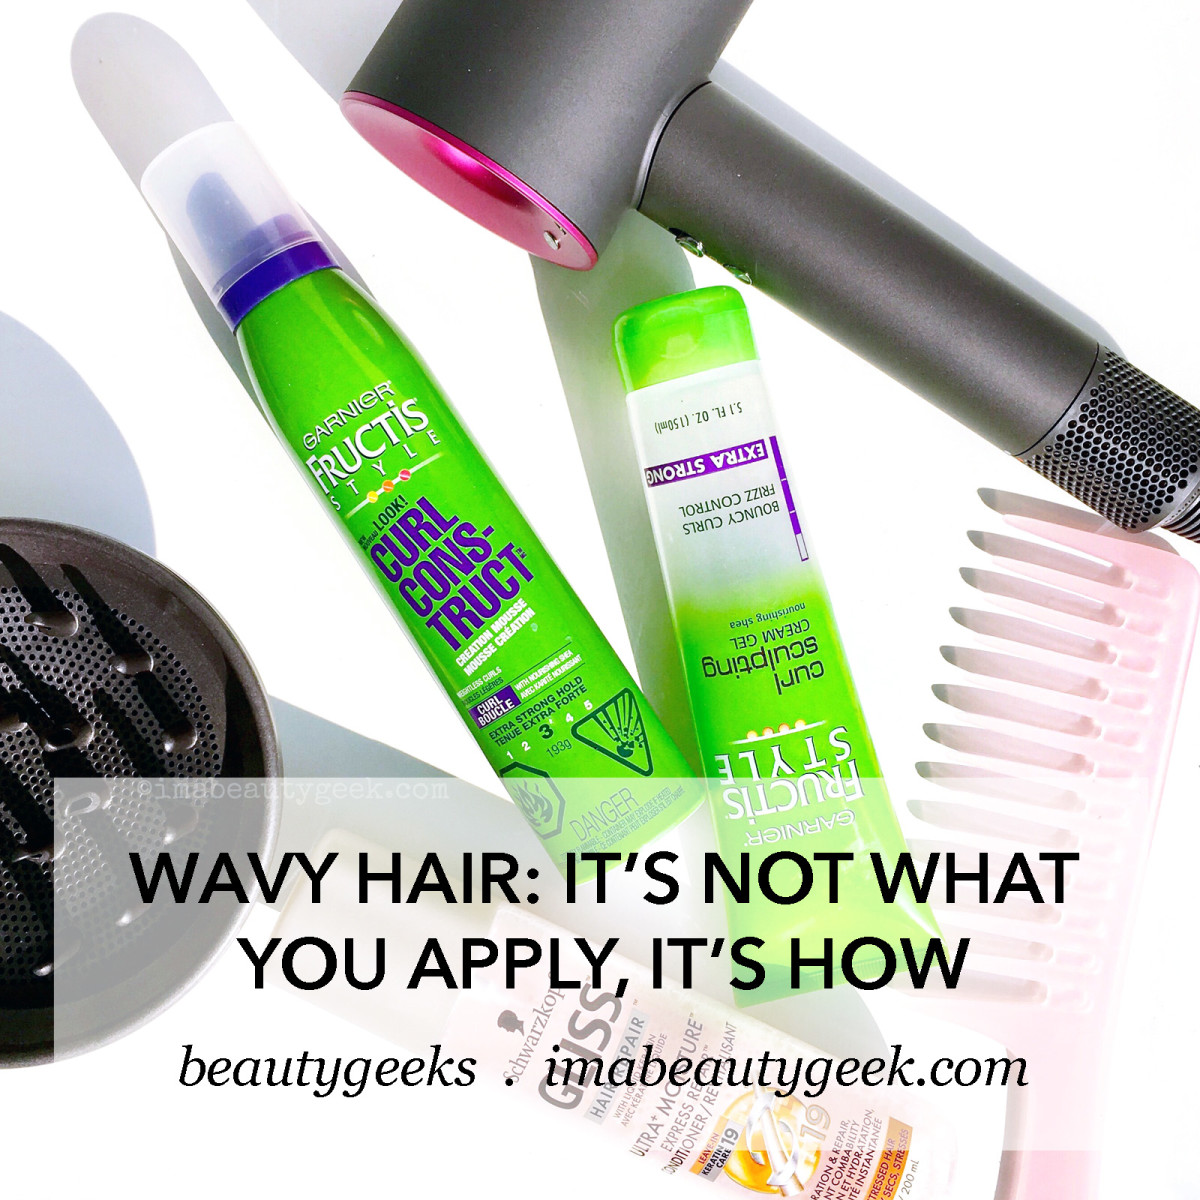 Wavy hair: to control frizz, it's not WHAT you apply to wet hair, it's HOW